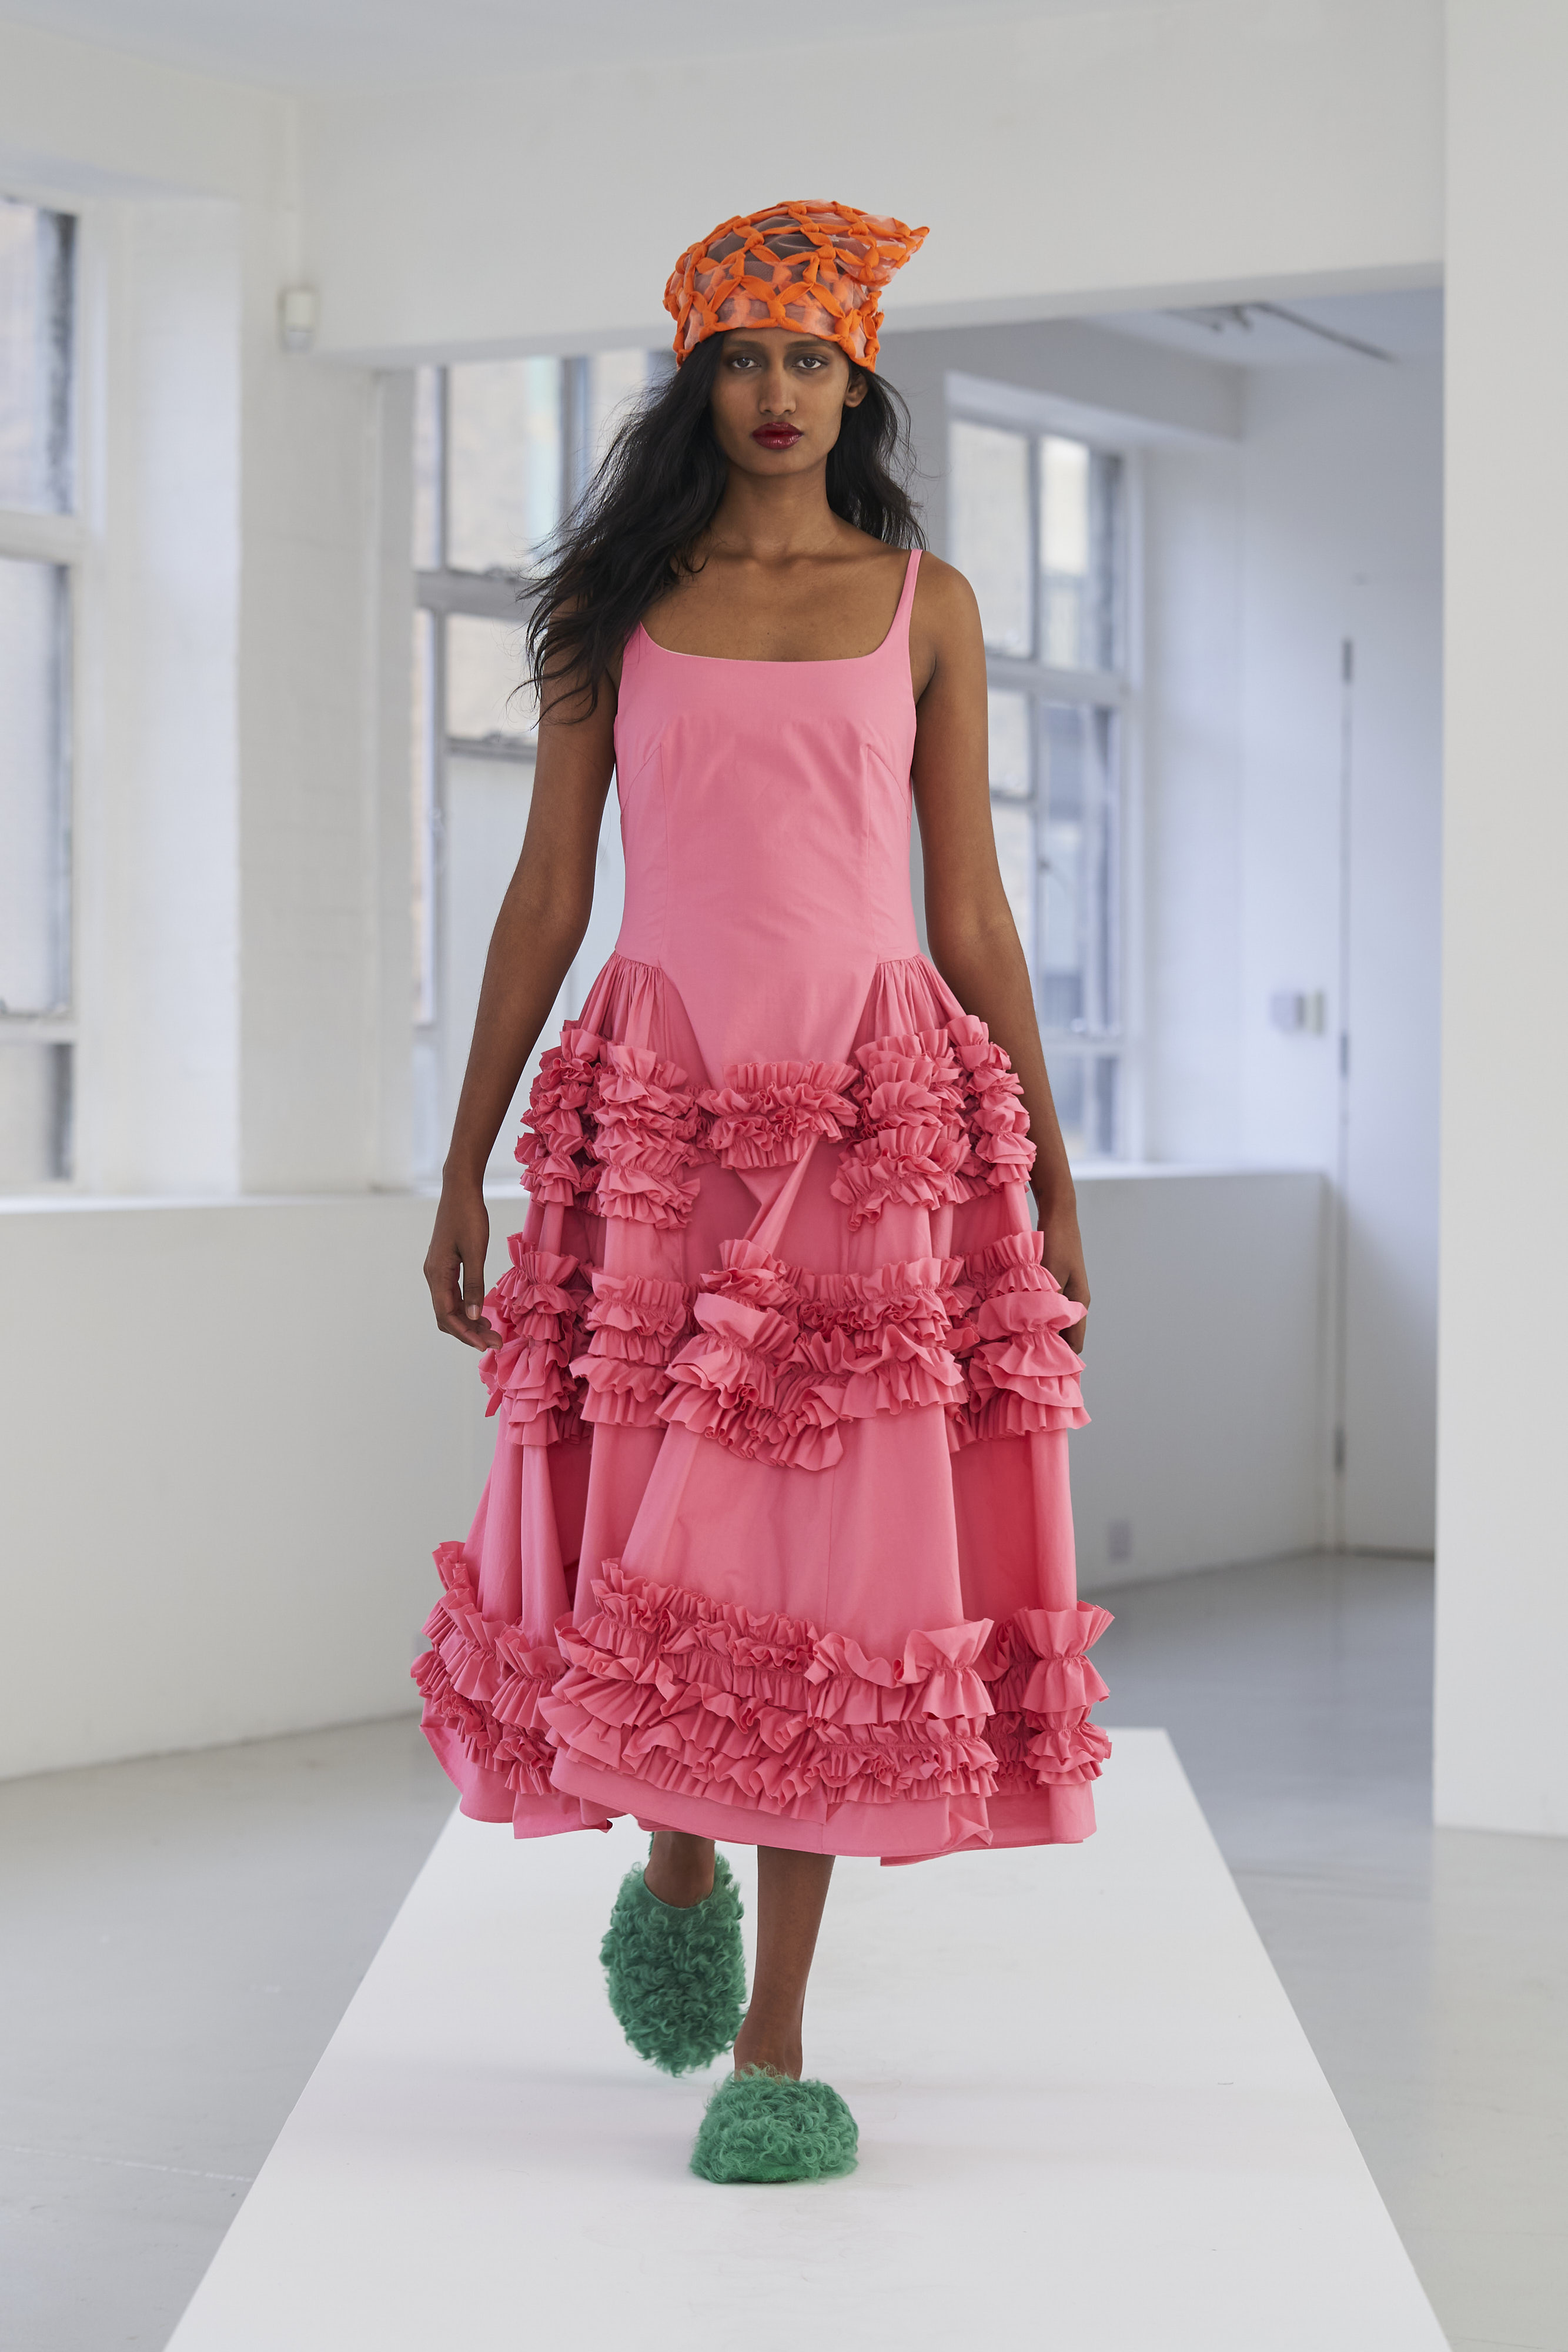 Think Pink: Spring/Summer 2021's Standout Color - Pink Fashion Runway Art Jewelry Travel